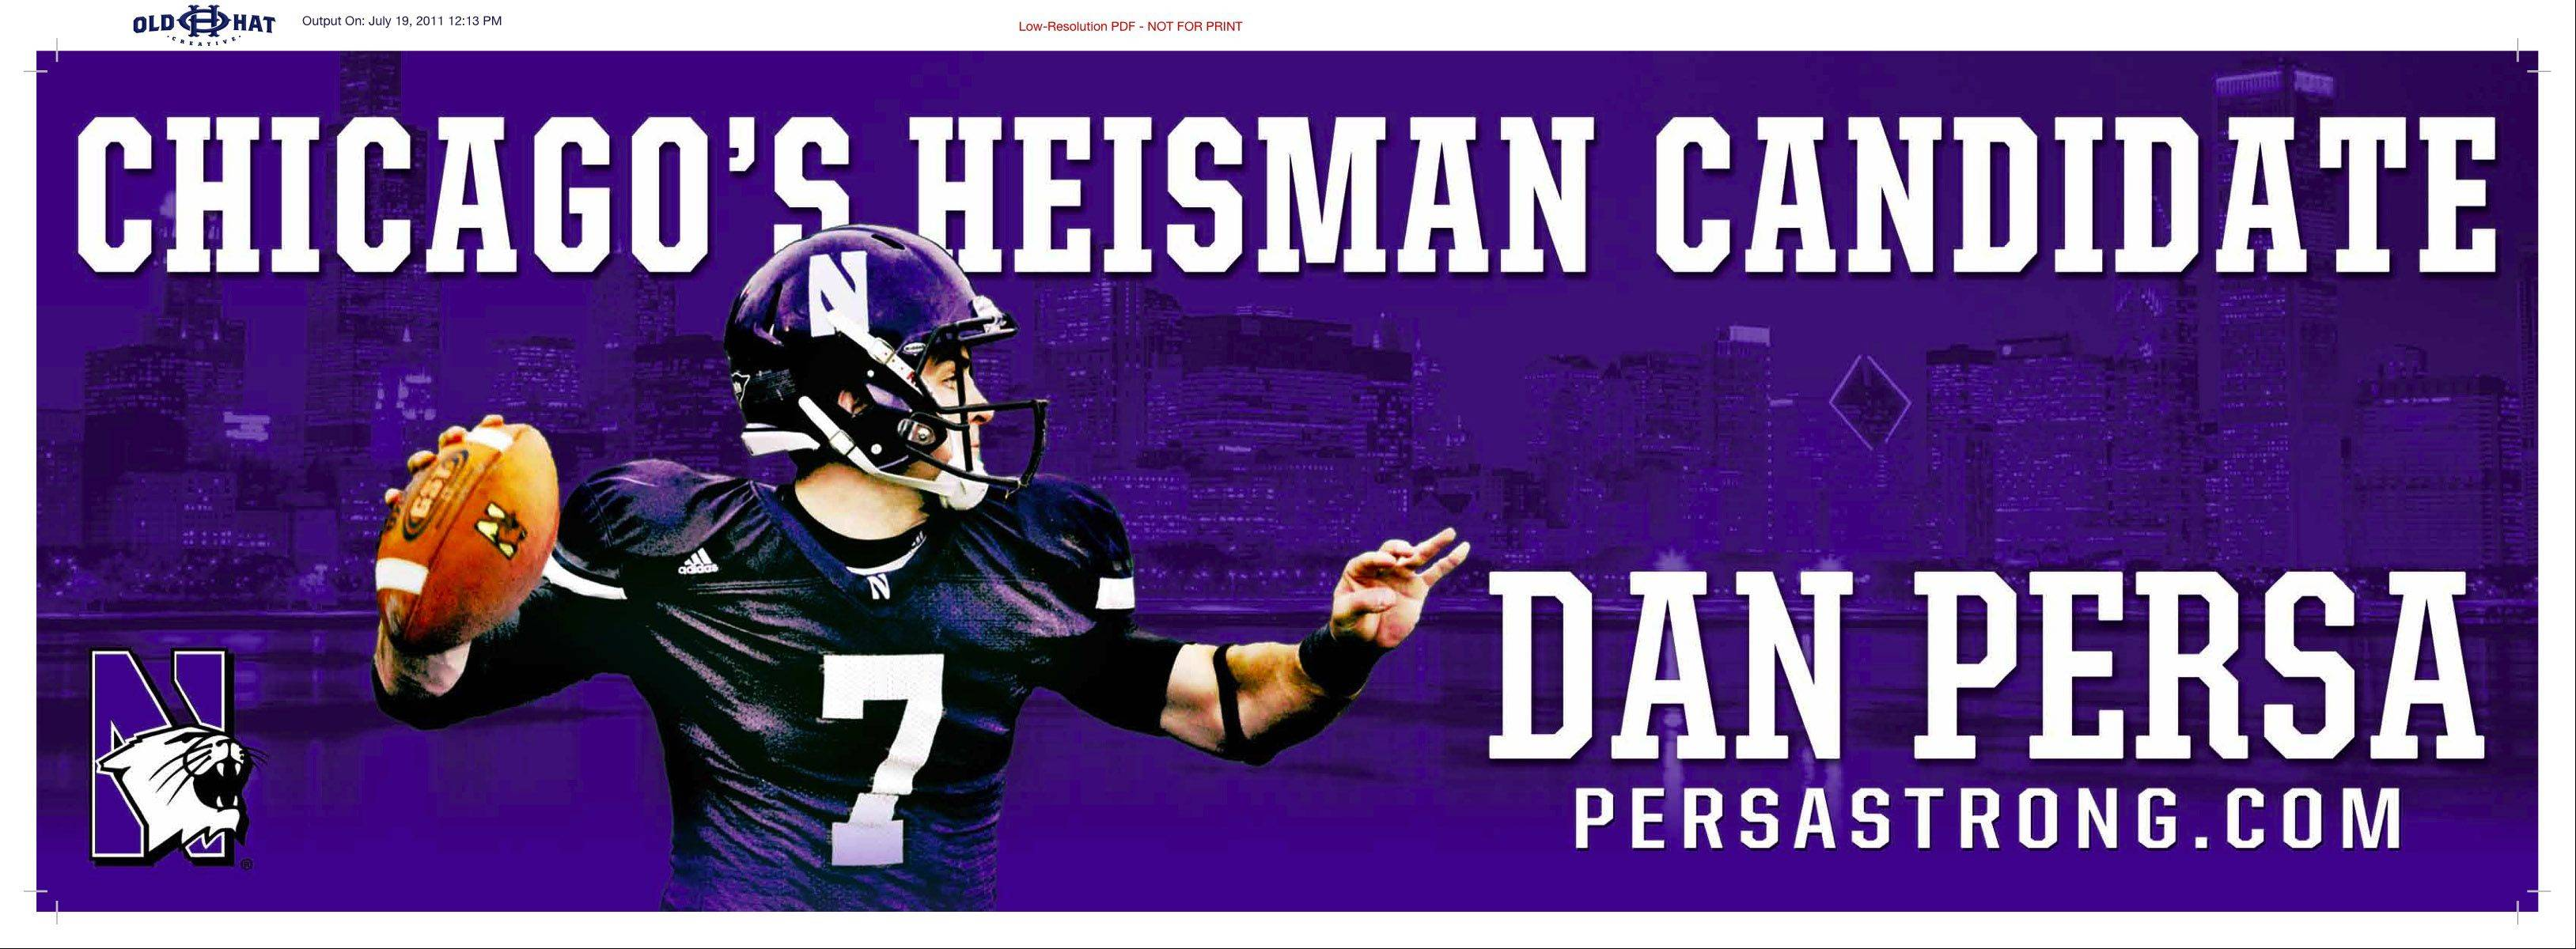 HANDOUT PHOTO Northwestern has started a billboard campaign hyping quarterback Dan Persa as a Heisman contender.